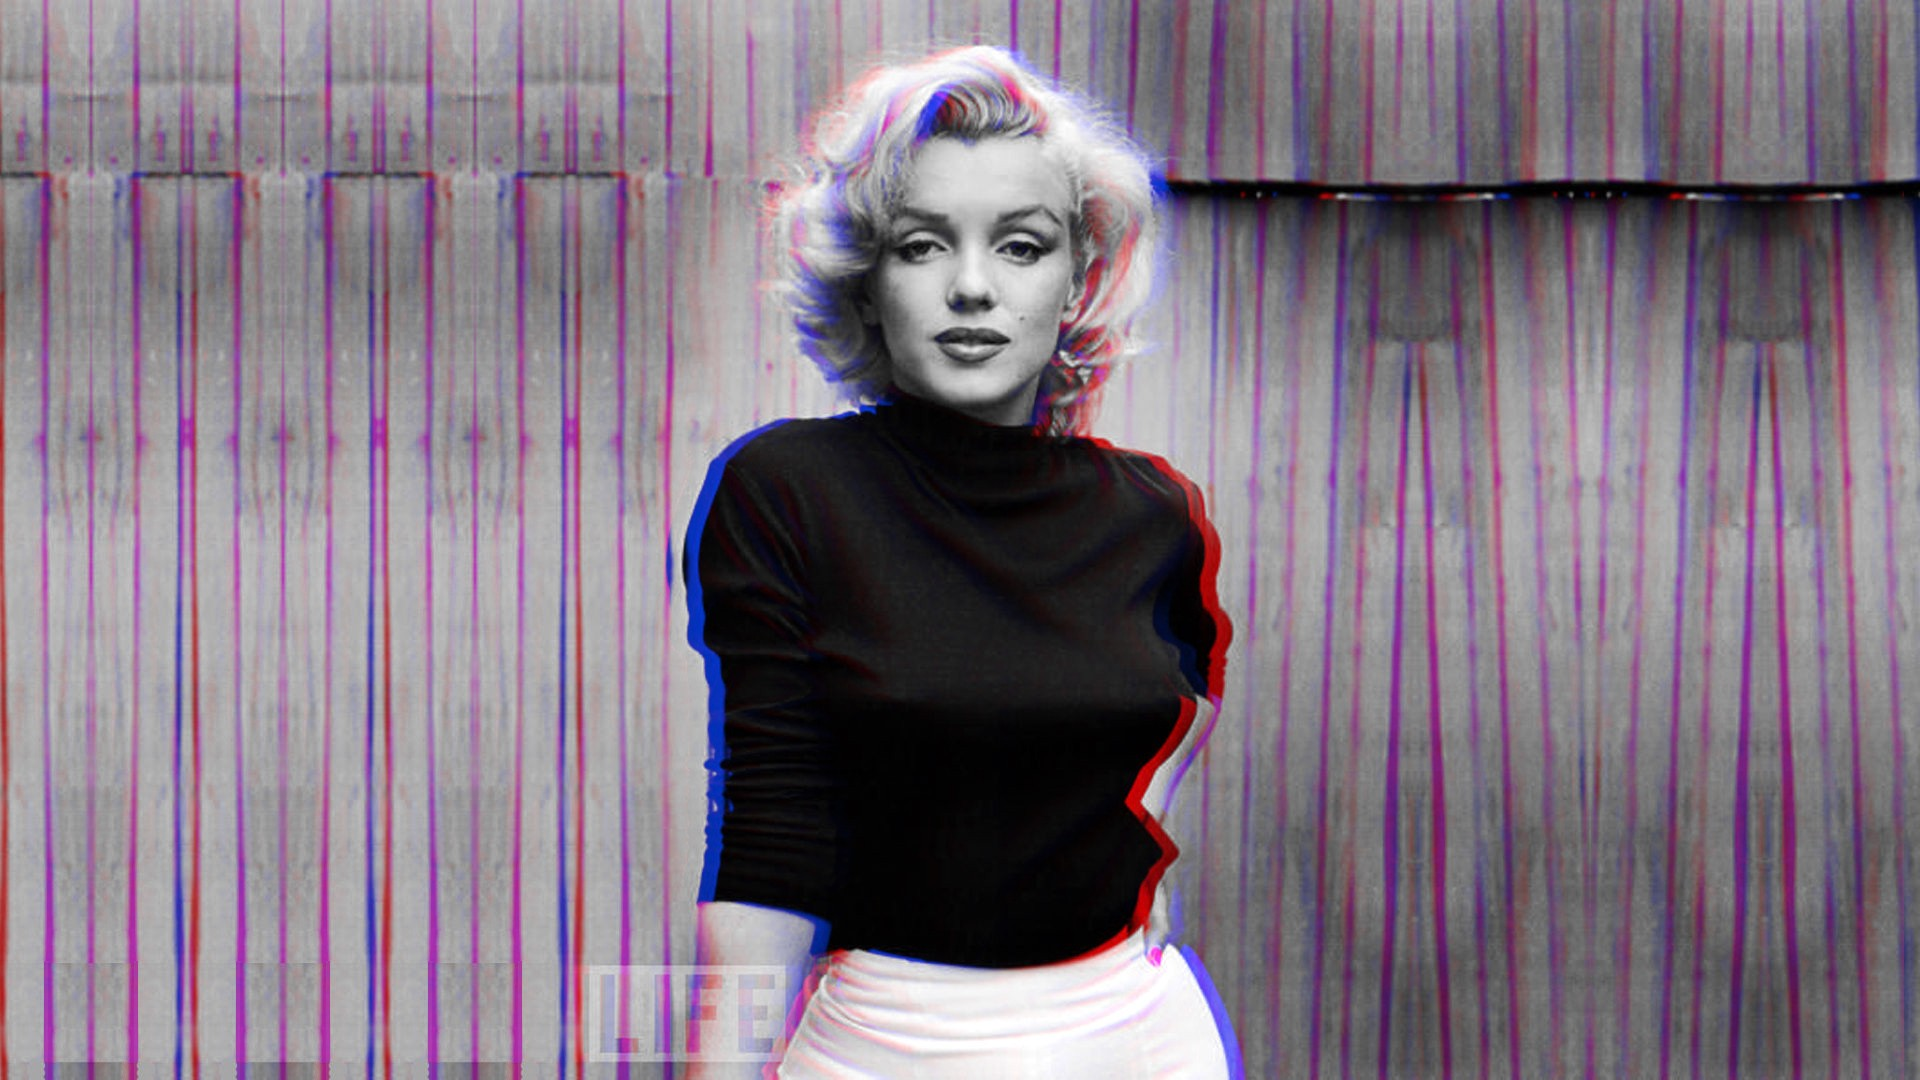 3d Anaglyph Wallpaper Desktop Anaglyph 3d Marilyn Monroe Wallpapers Hd Desktop And